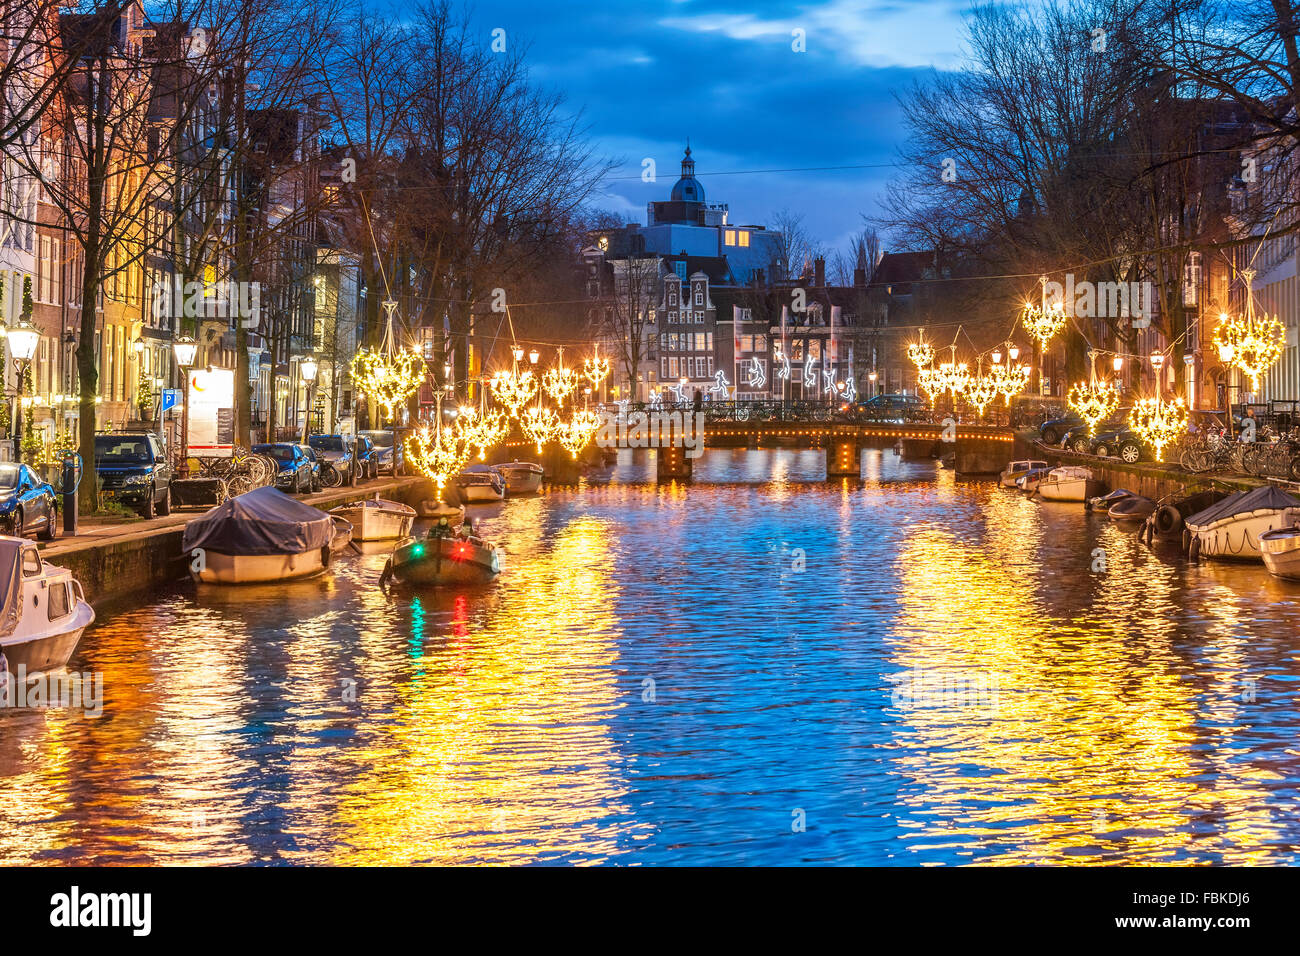 Amsterdam herengracht canal in winter with seasonal lights for Herengracht amsterdam